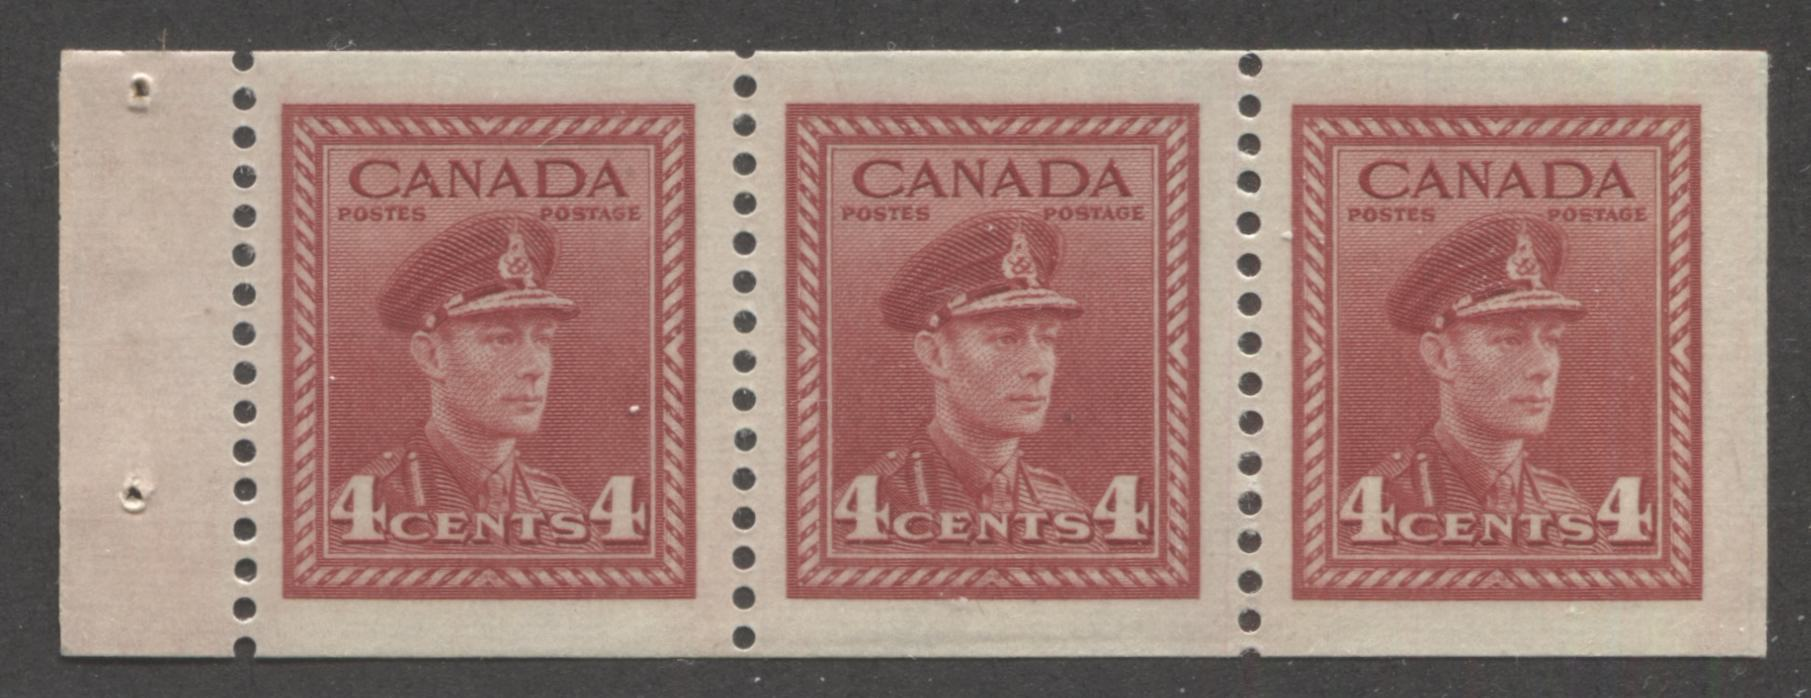 Canada #254b 4c Carmine-Red King George VI, 1942-1949 War Issue, A Very Fine Mint NH Example of the Chewing Gum Booklet Pane Brixton Chrome